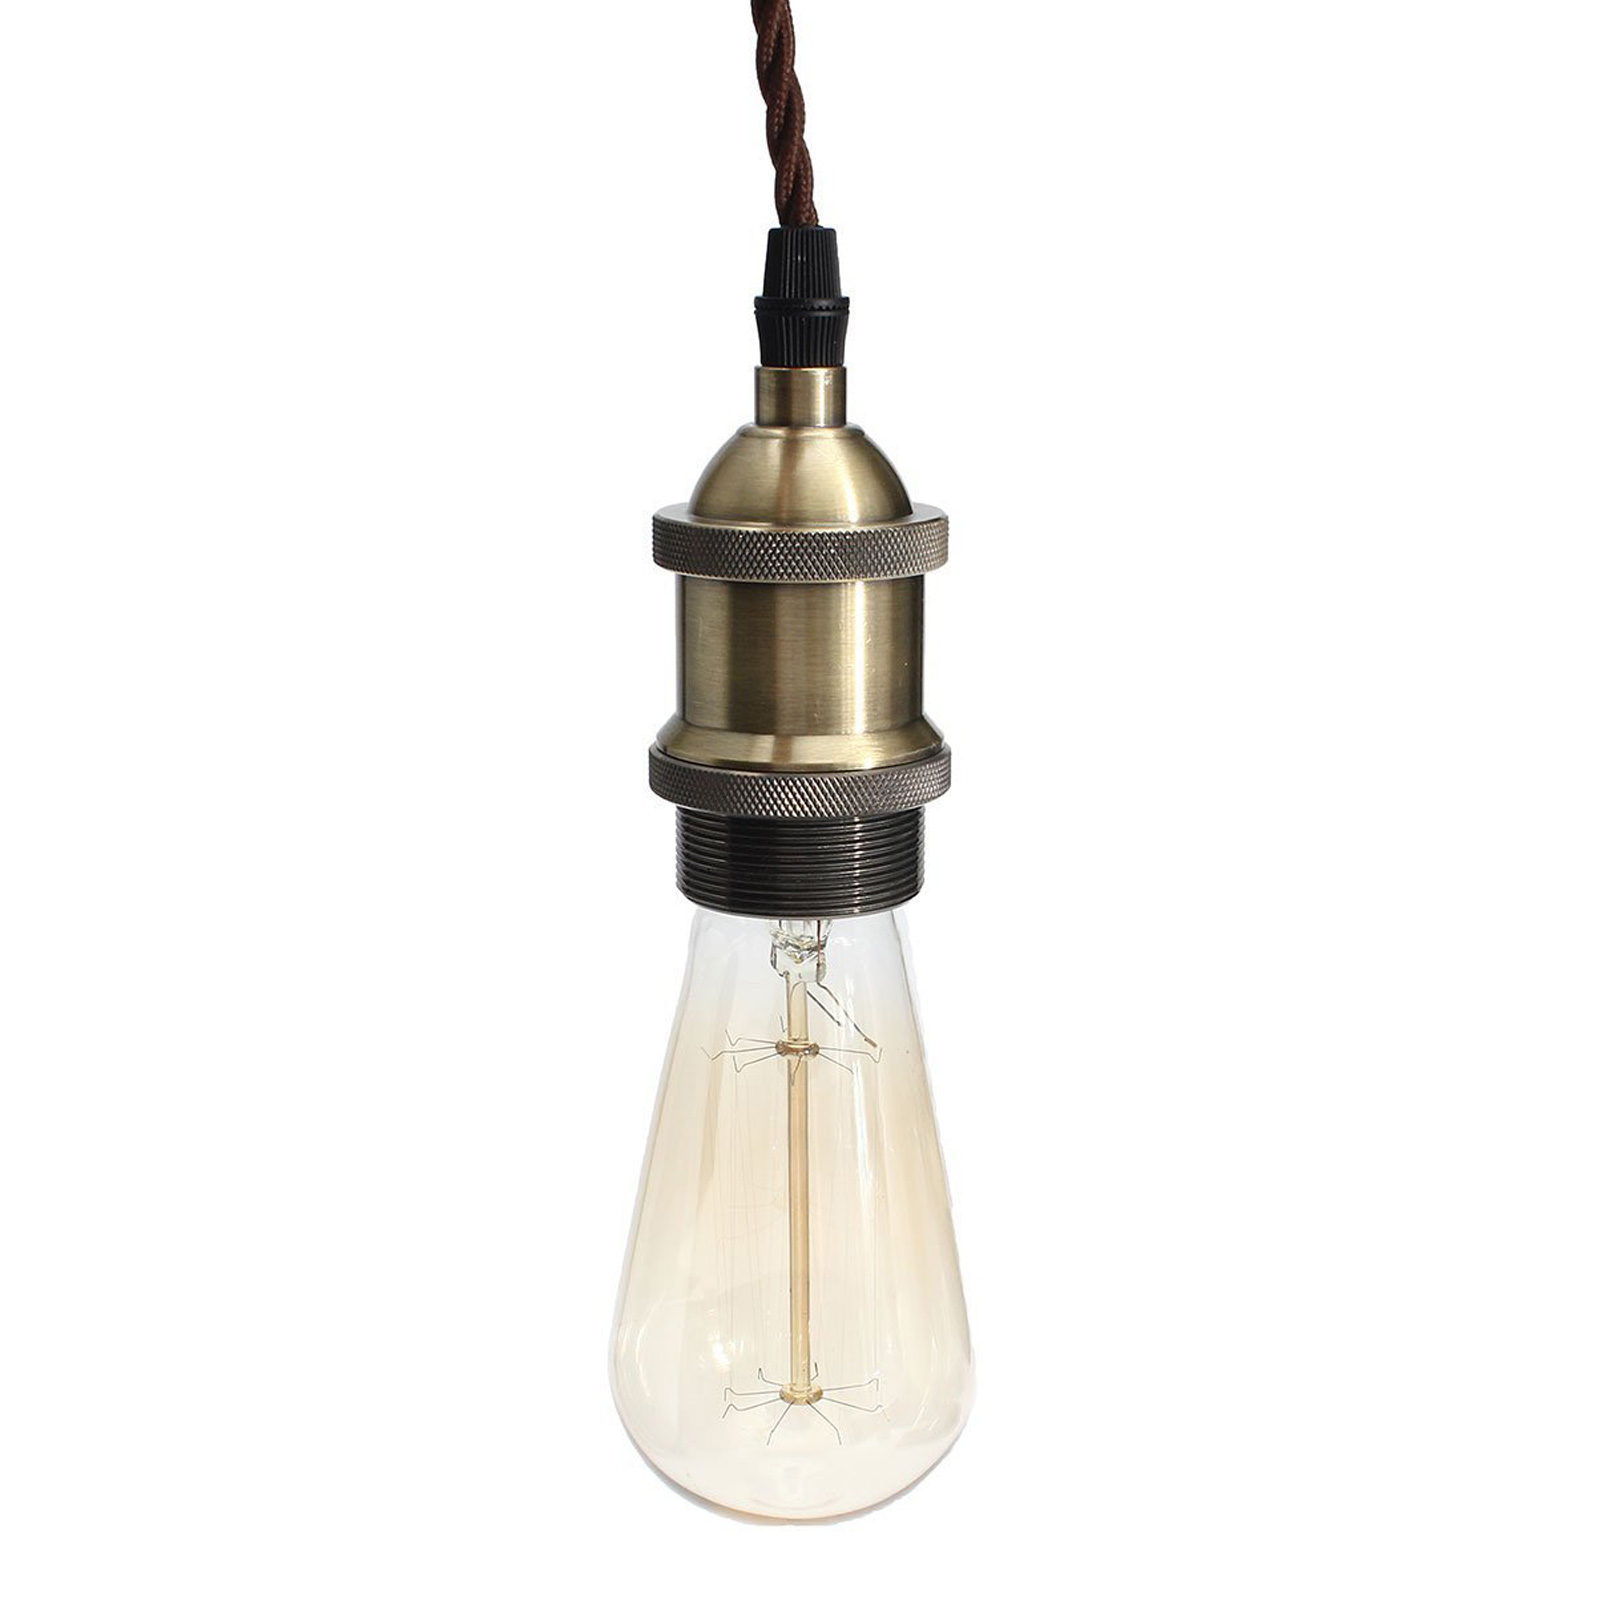 Vintage industrial light kit retro pendant ceiling lamp for Industrial lamp kit